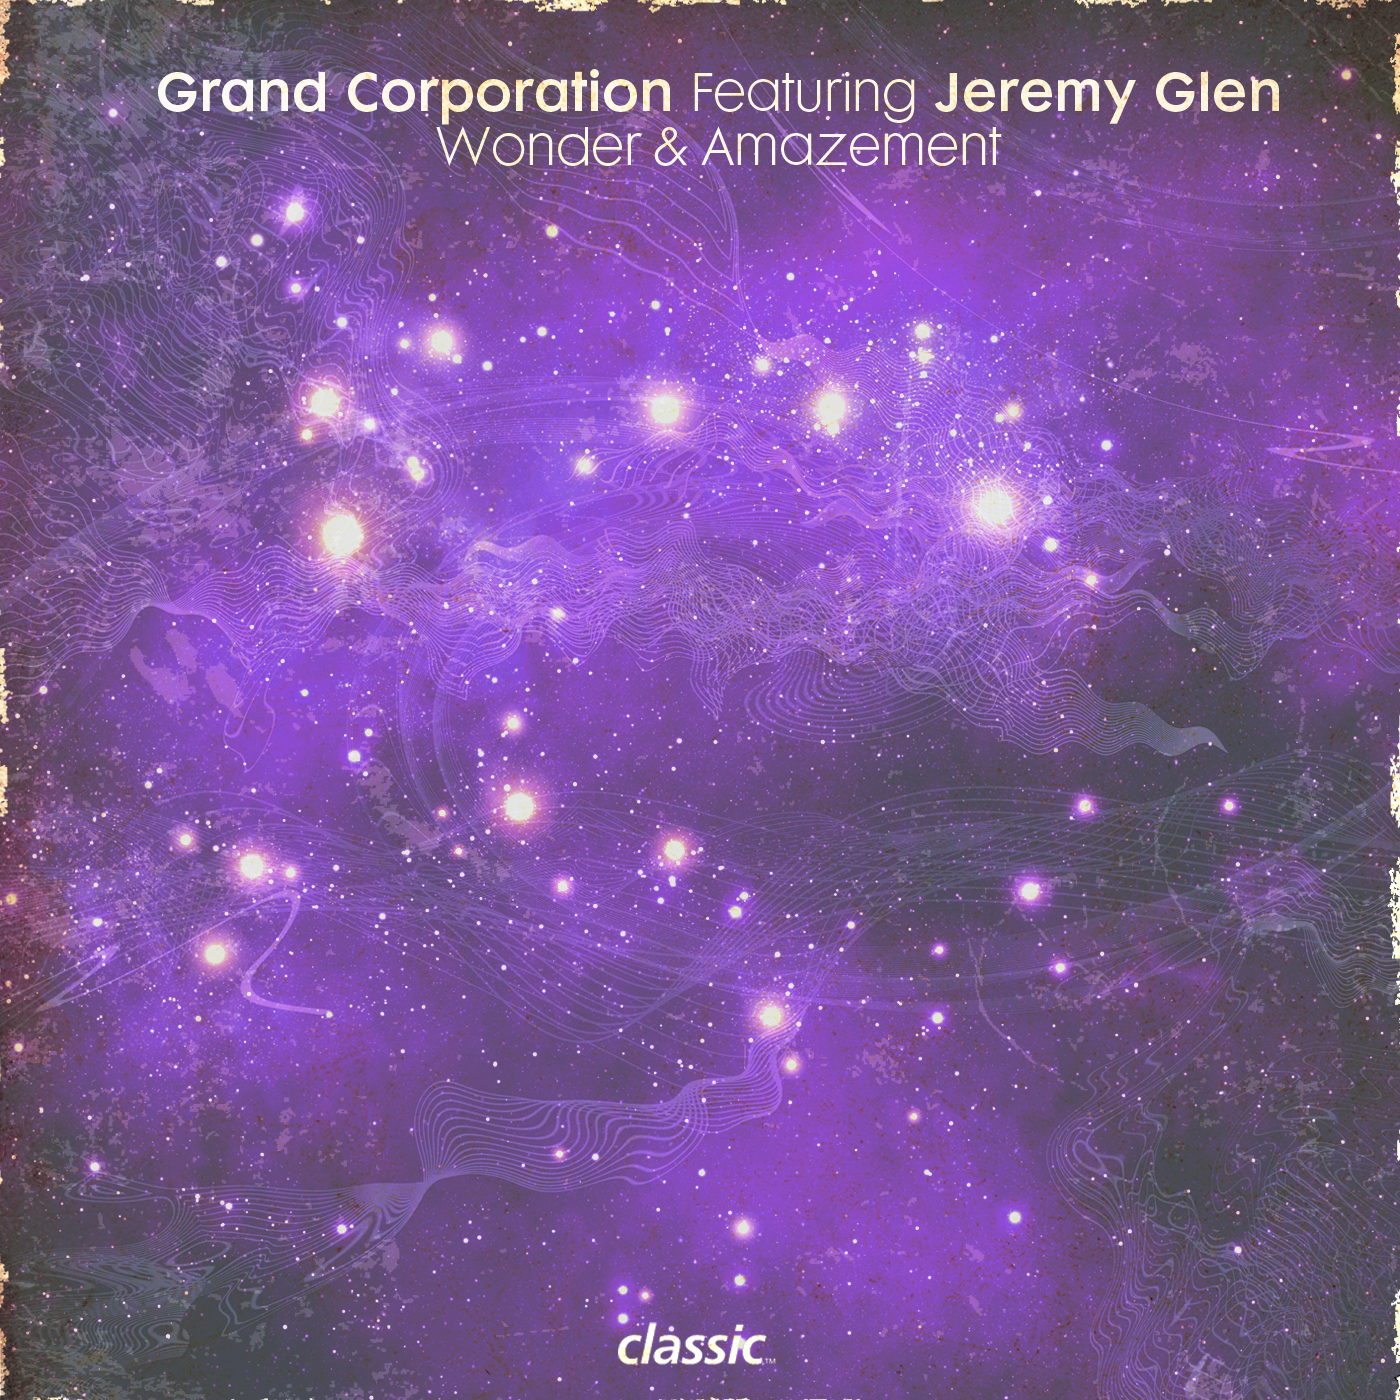 Wonder & Amazement - Grand Corporation